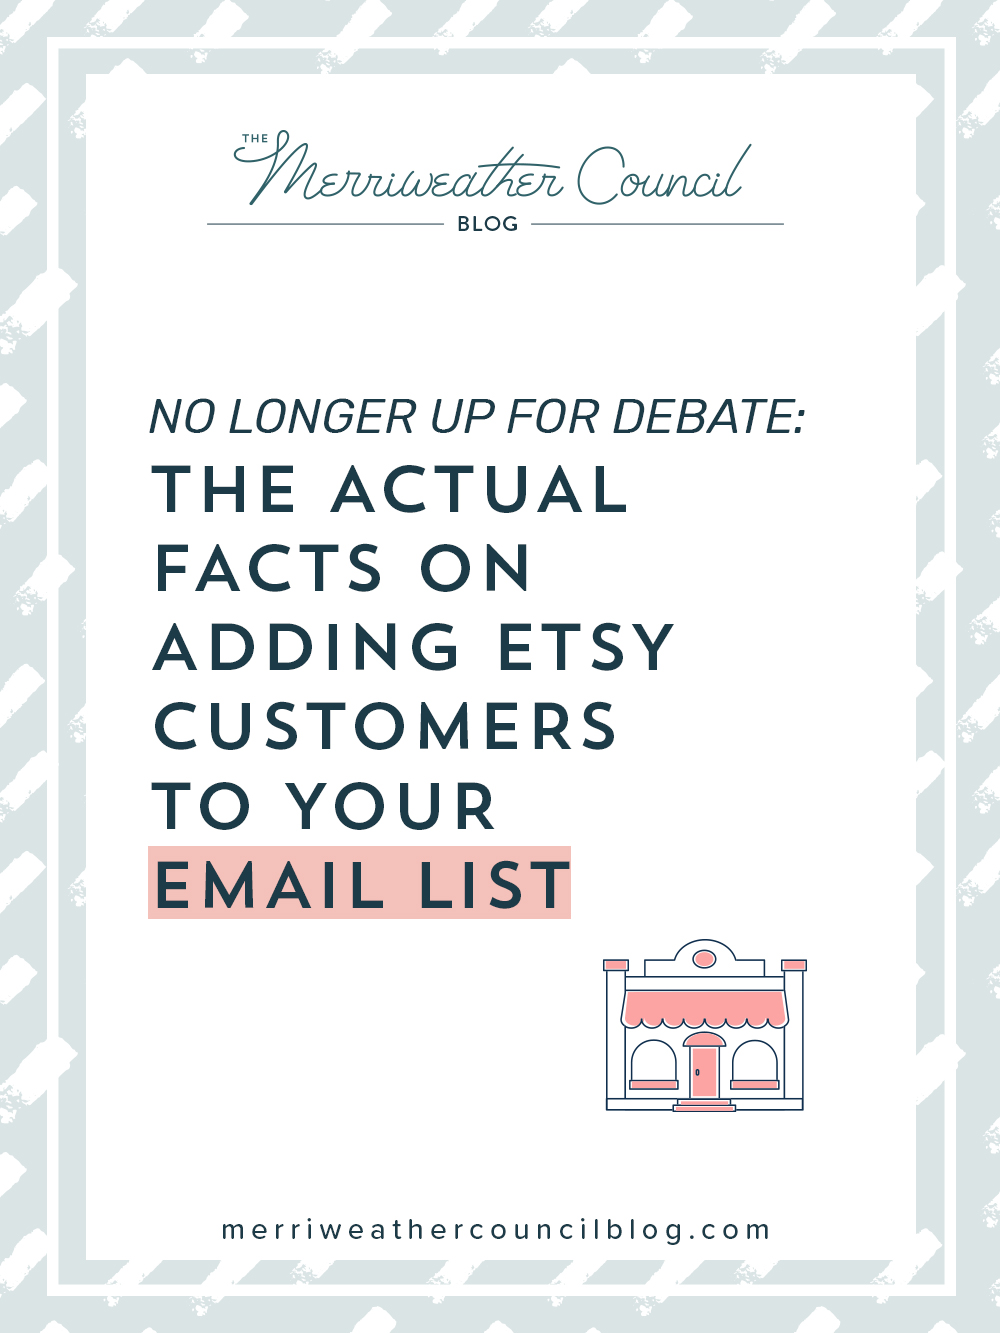 the actual facts on adding etsy customers to your email list